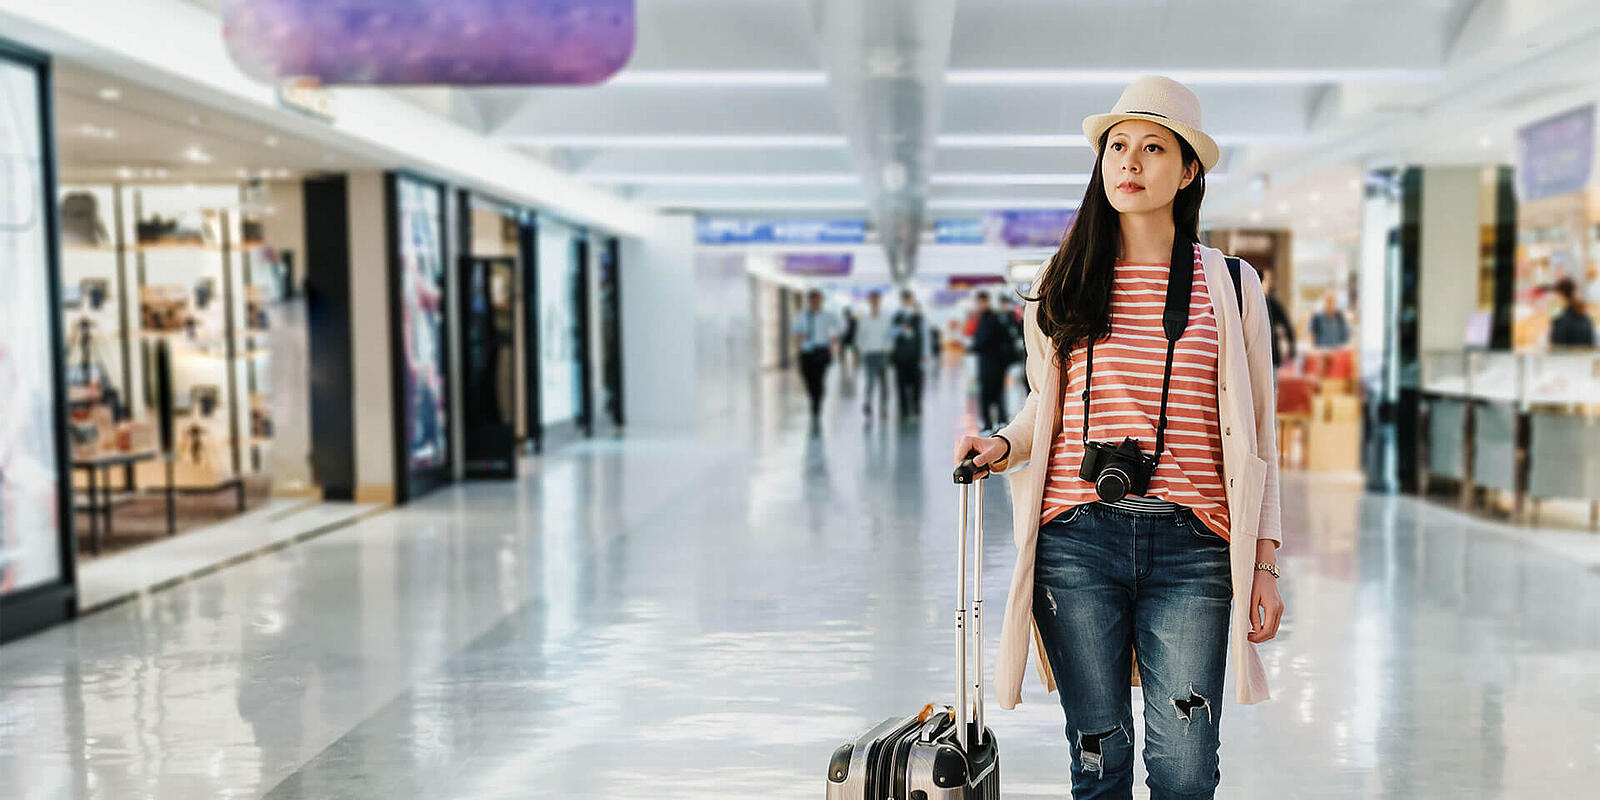 The 4 top trends influencing the travel retail industry